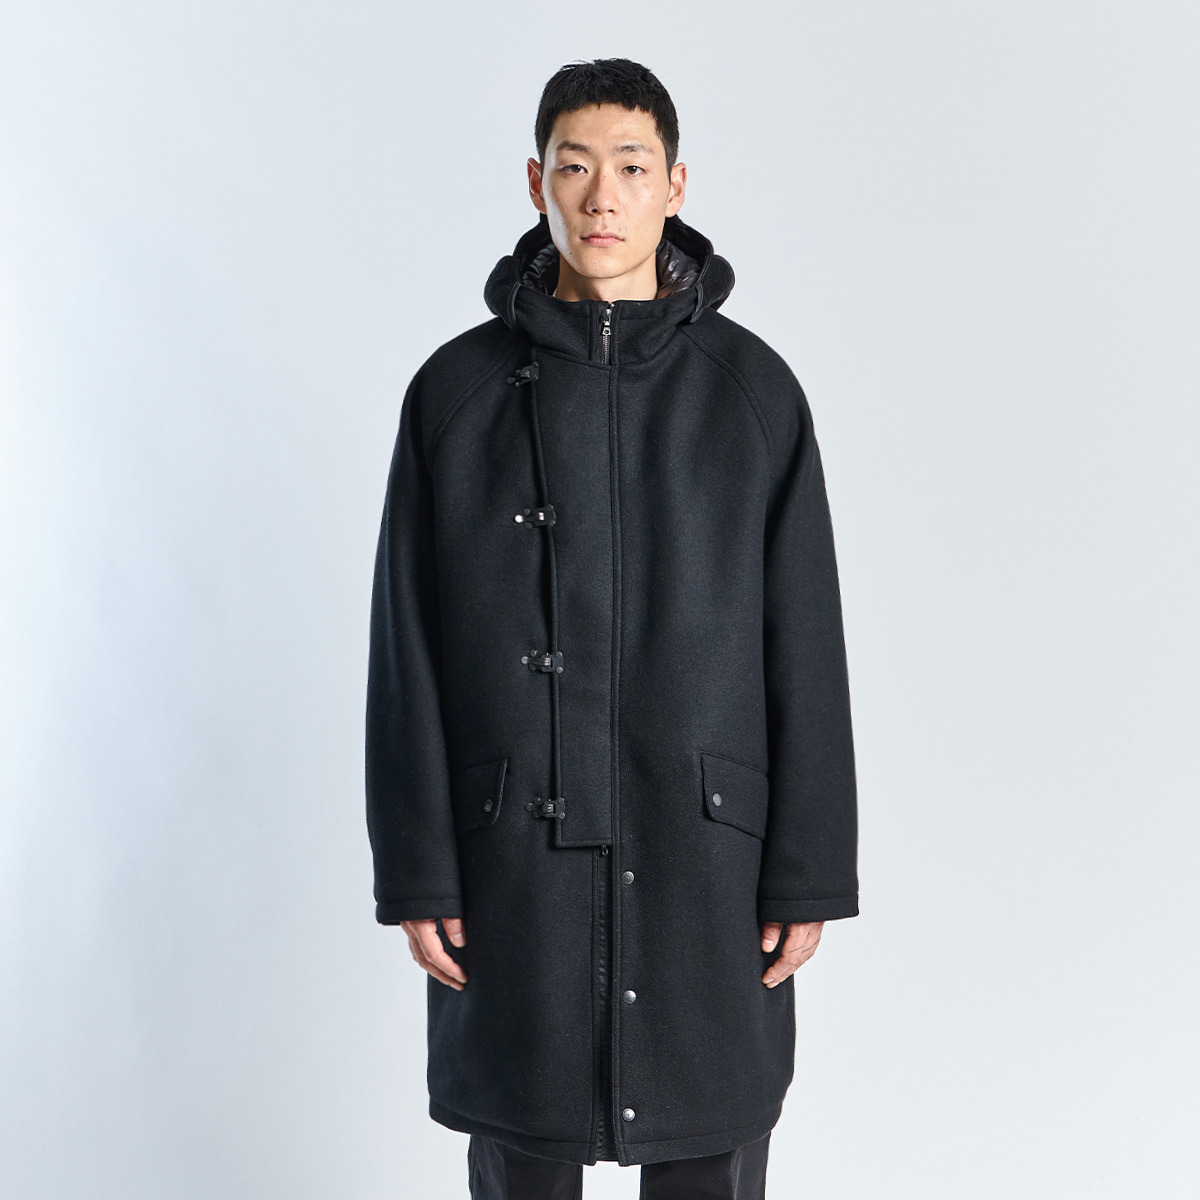 CWU COAT (Black Melton)